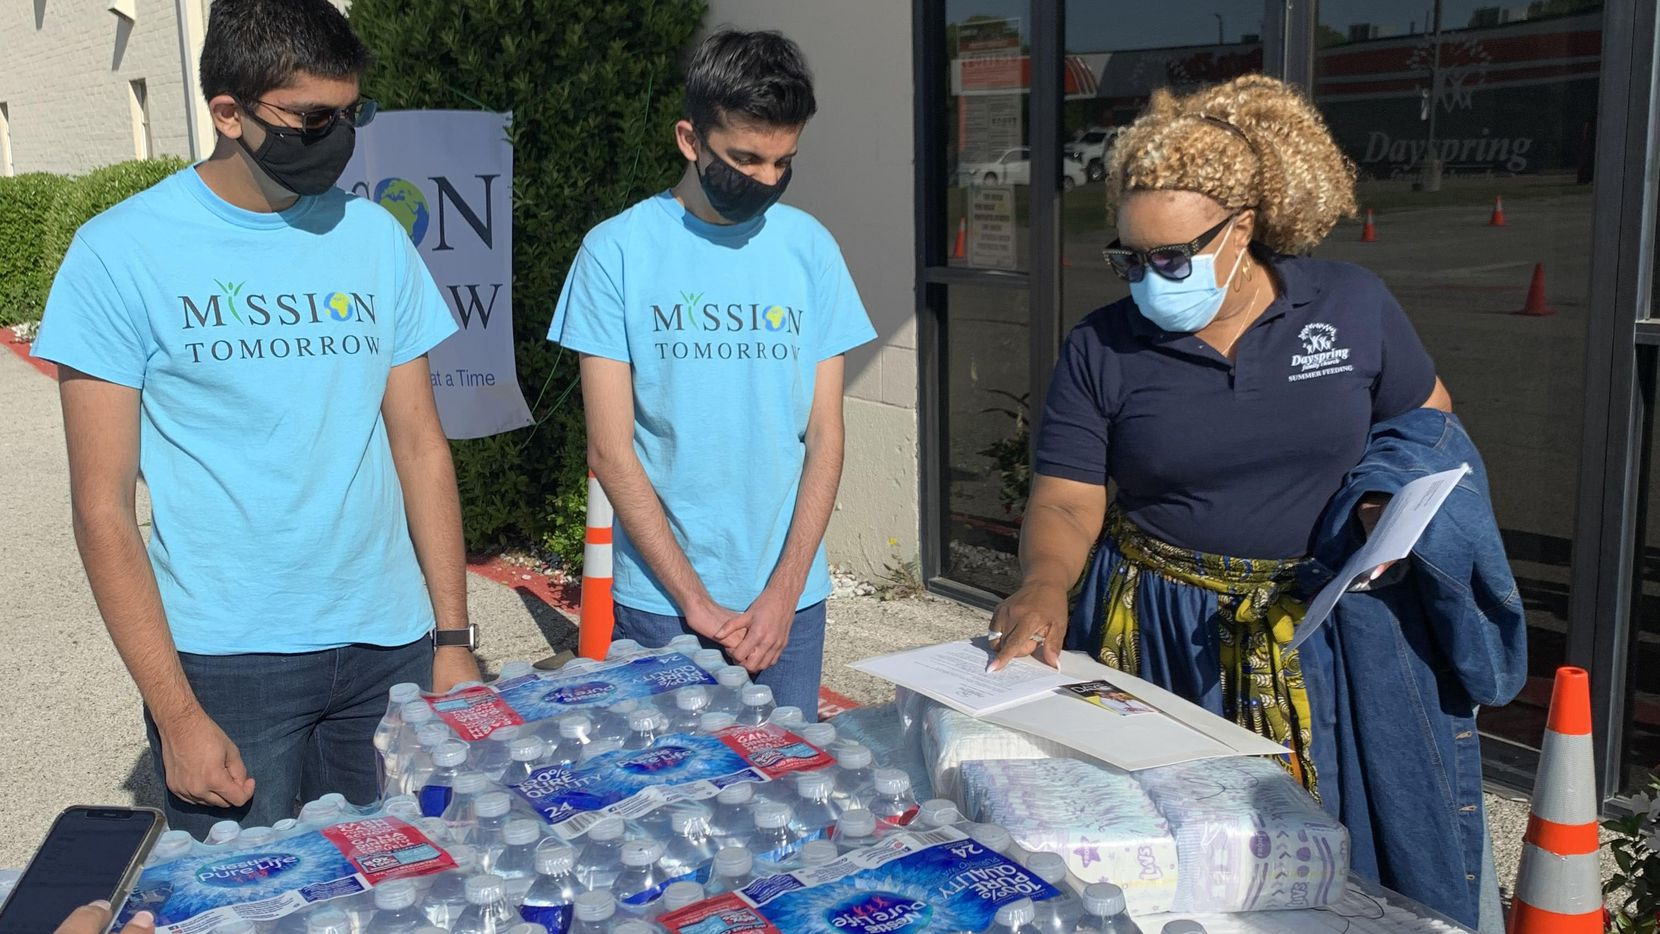 Mission Tomorrow co-founders Vansh (from left) and Dhruv Nanda work with pastor Sonjia Dickerson to help distribute 8,000 bottles of water at Dayspring Family Church Food Pantry in Irving.